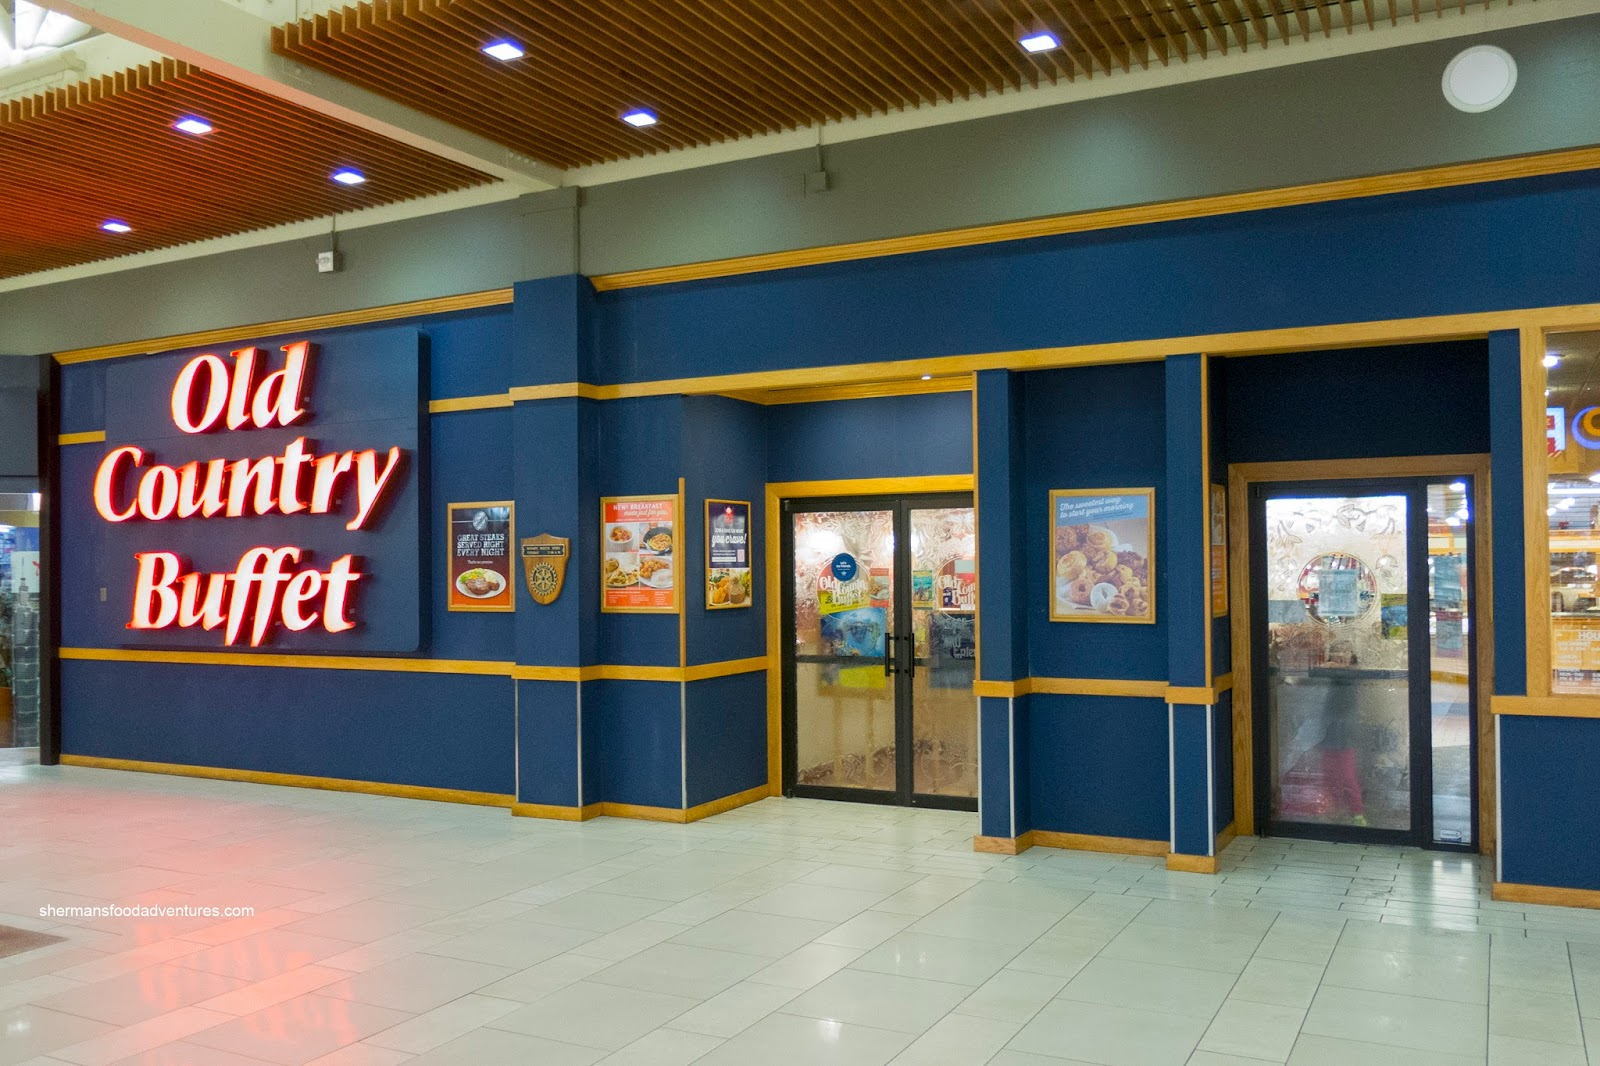 Old Country Buffet has closed more than locations over the past eight years, according to the Star Tribune. Its operator is in the middle of its third Chapter 11 bankruptcy filing since Its operator is in the middle of its third Chapter 11 bankruptcy filing since